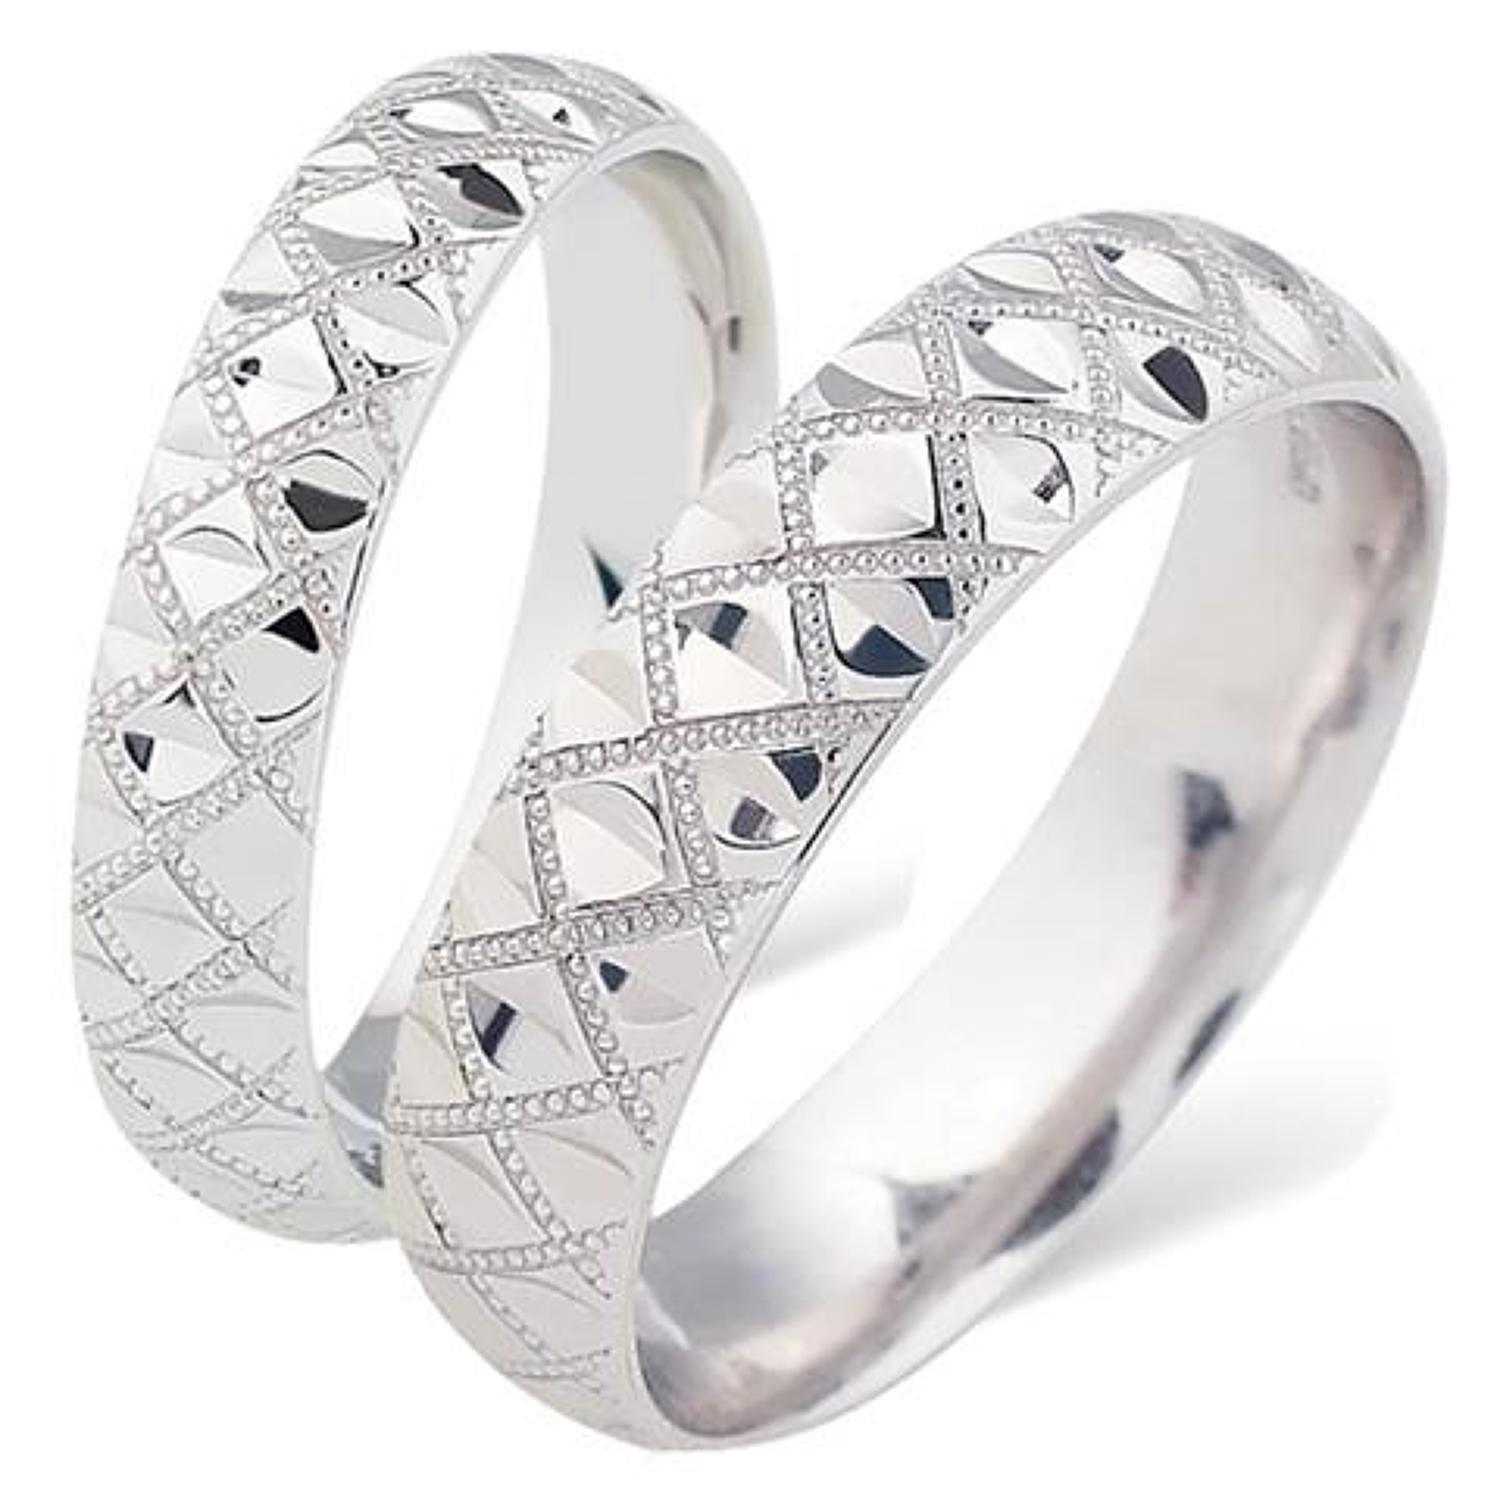 Ladies Patterned Wedding Ring